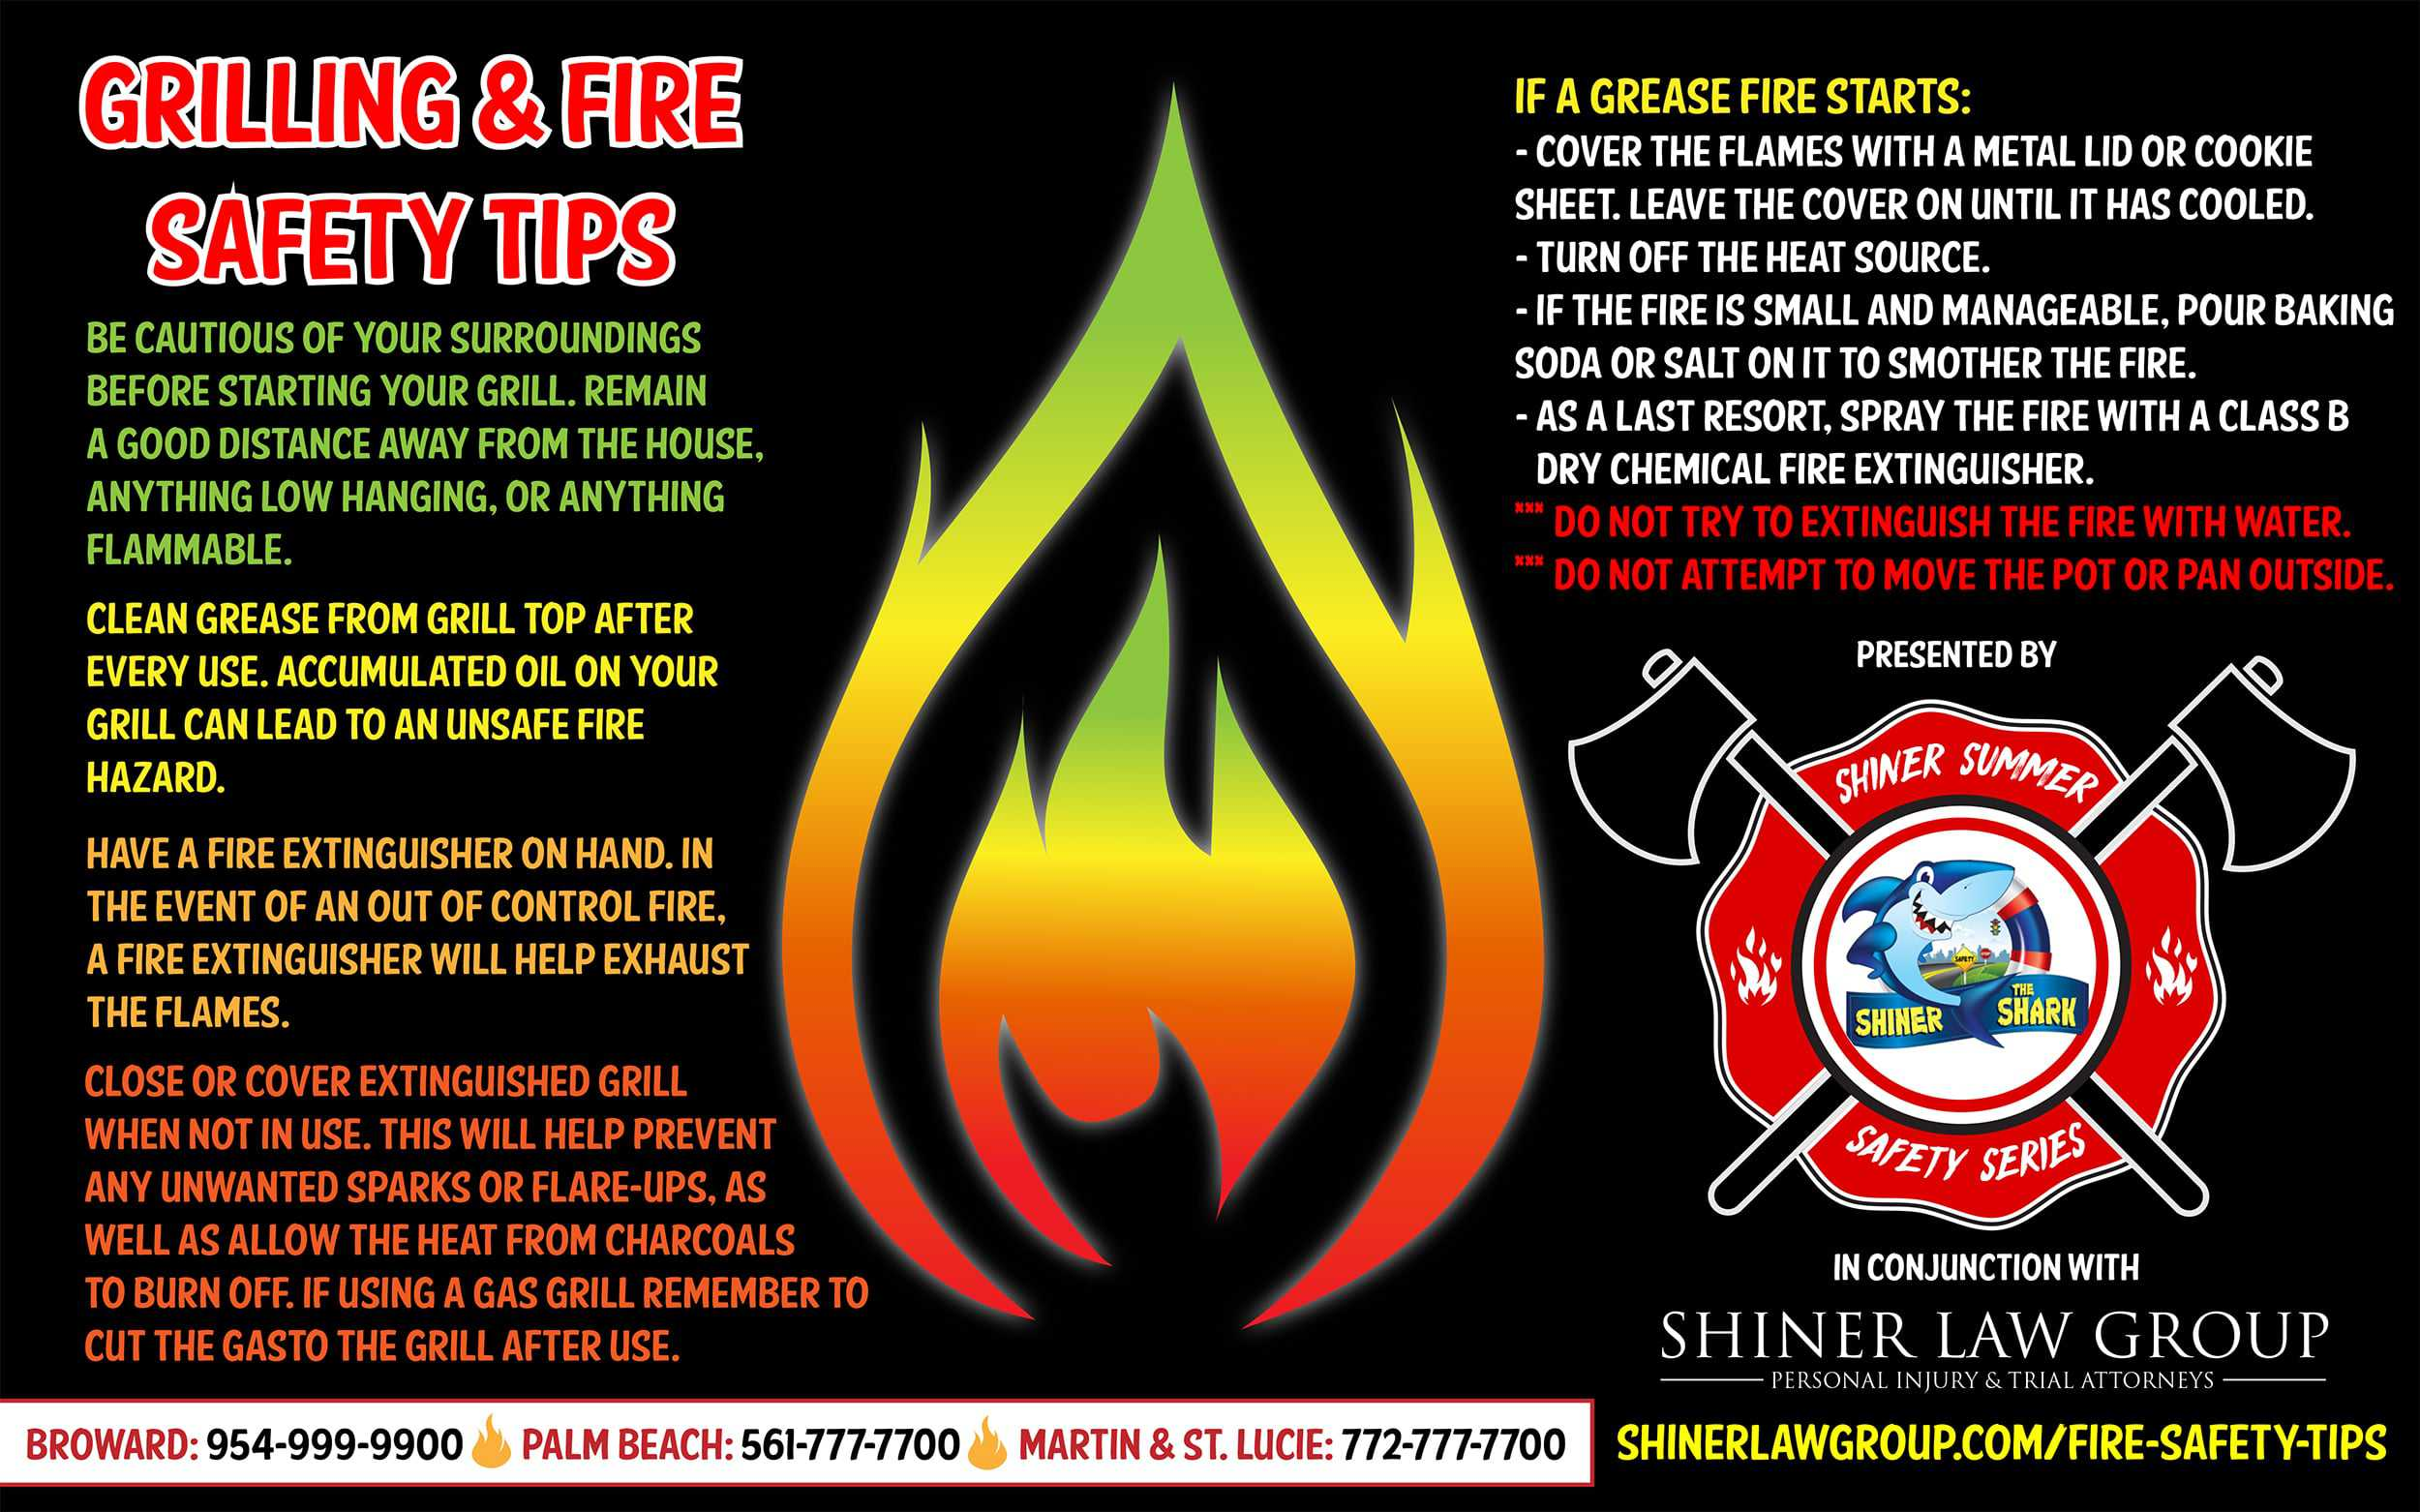 Fire Safety Tips Boca Injury Lawyer David Shiner Law Group